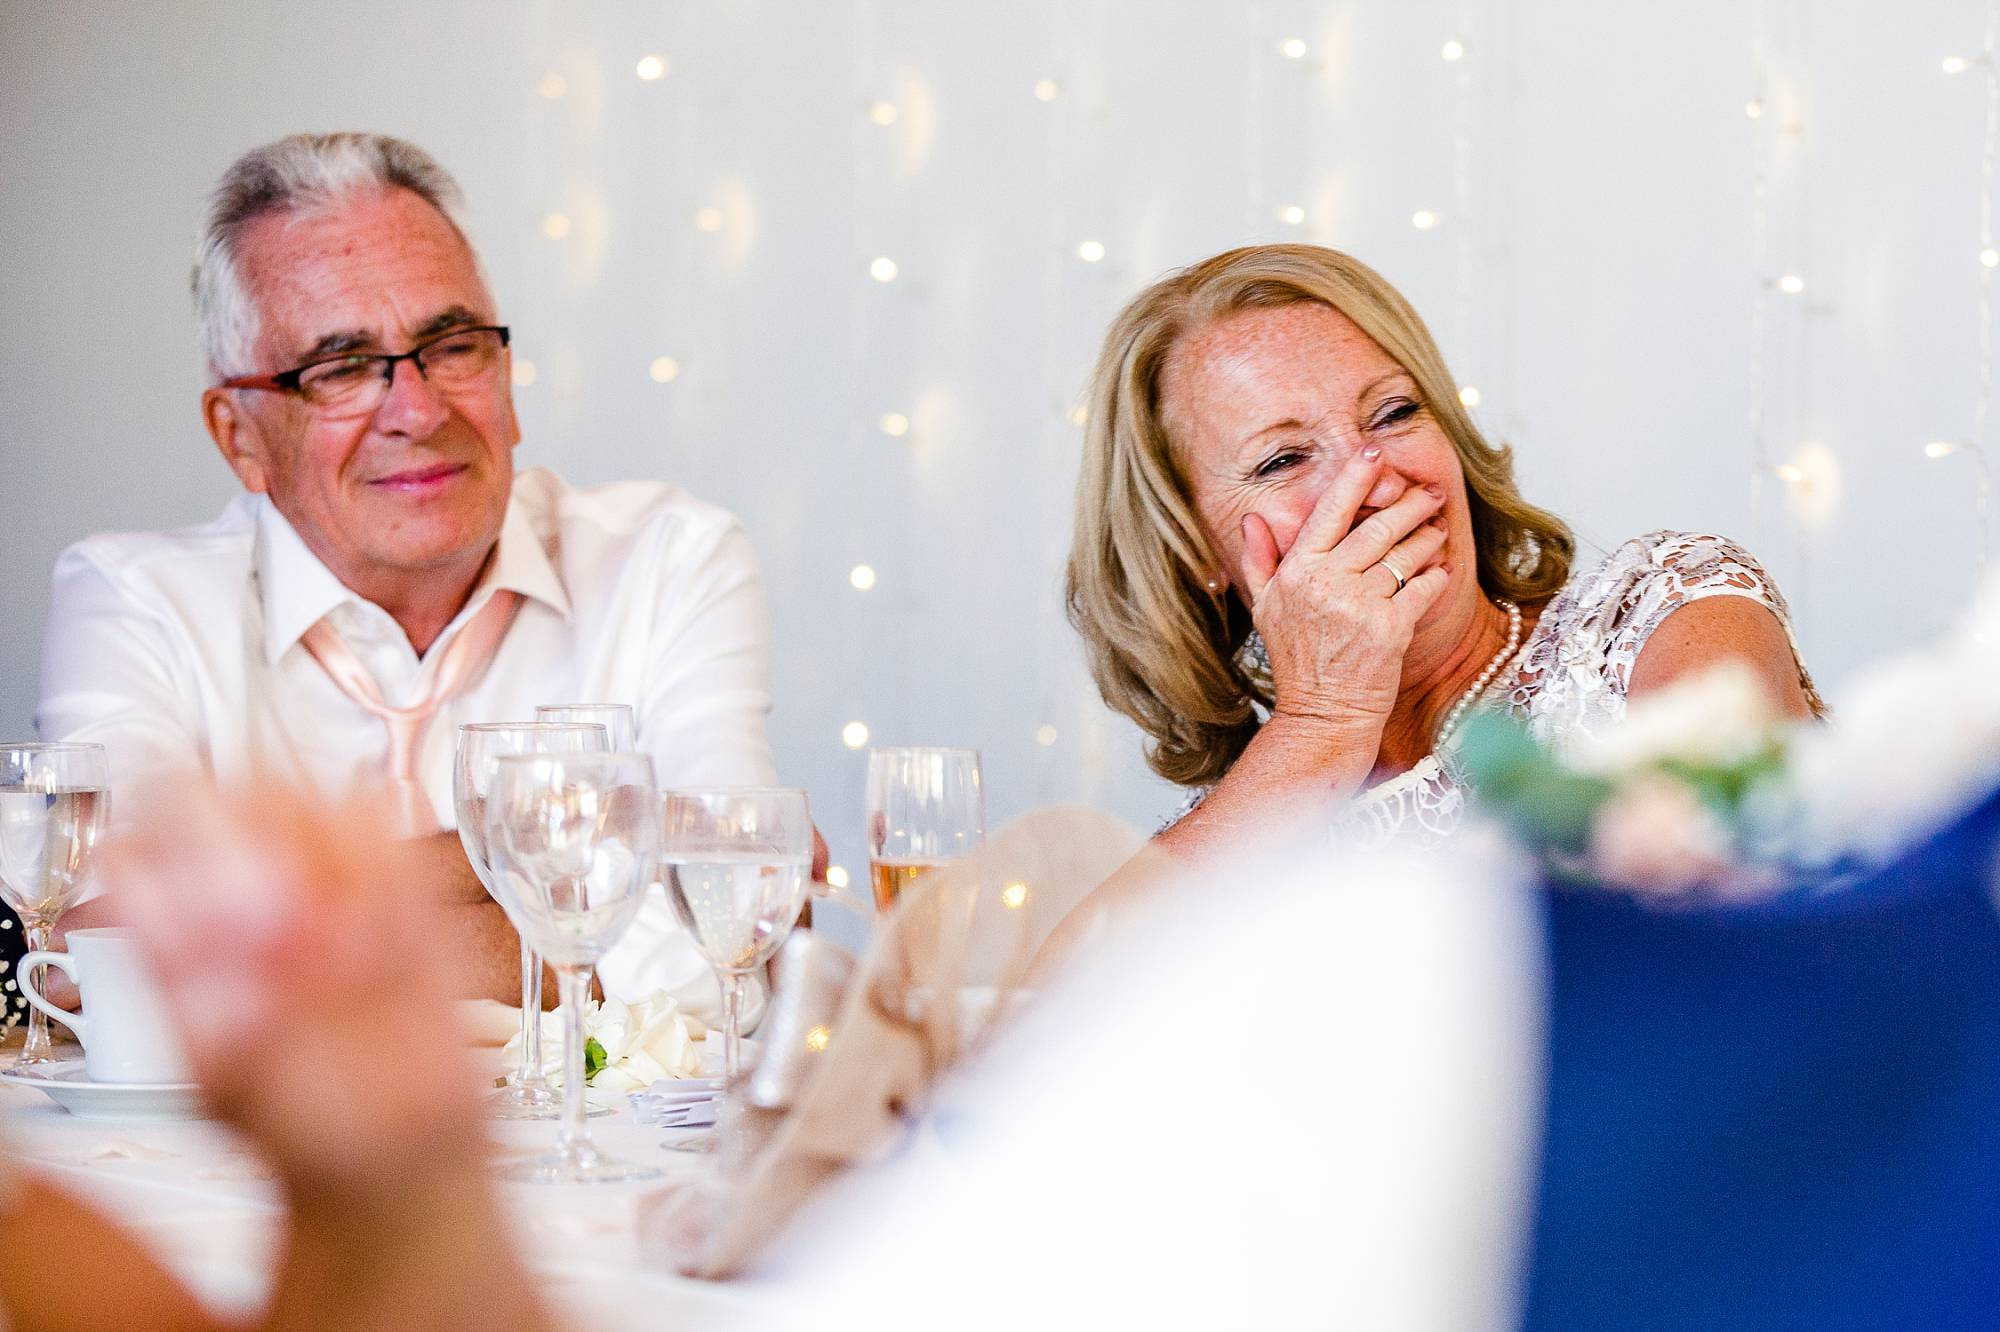 Houchins Essex Wedding Photographer_0080.jpg